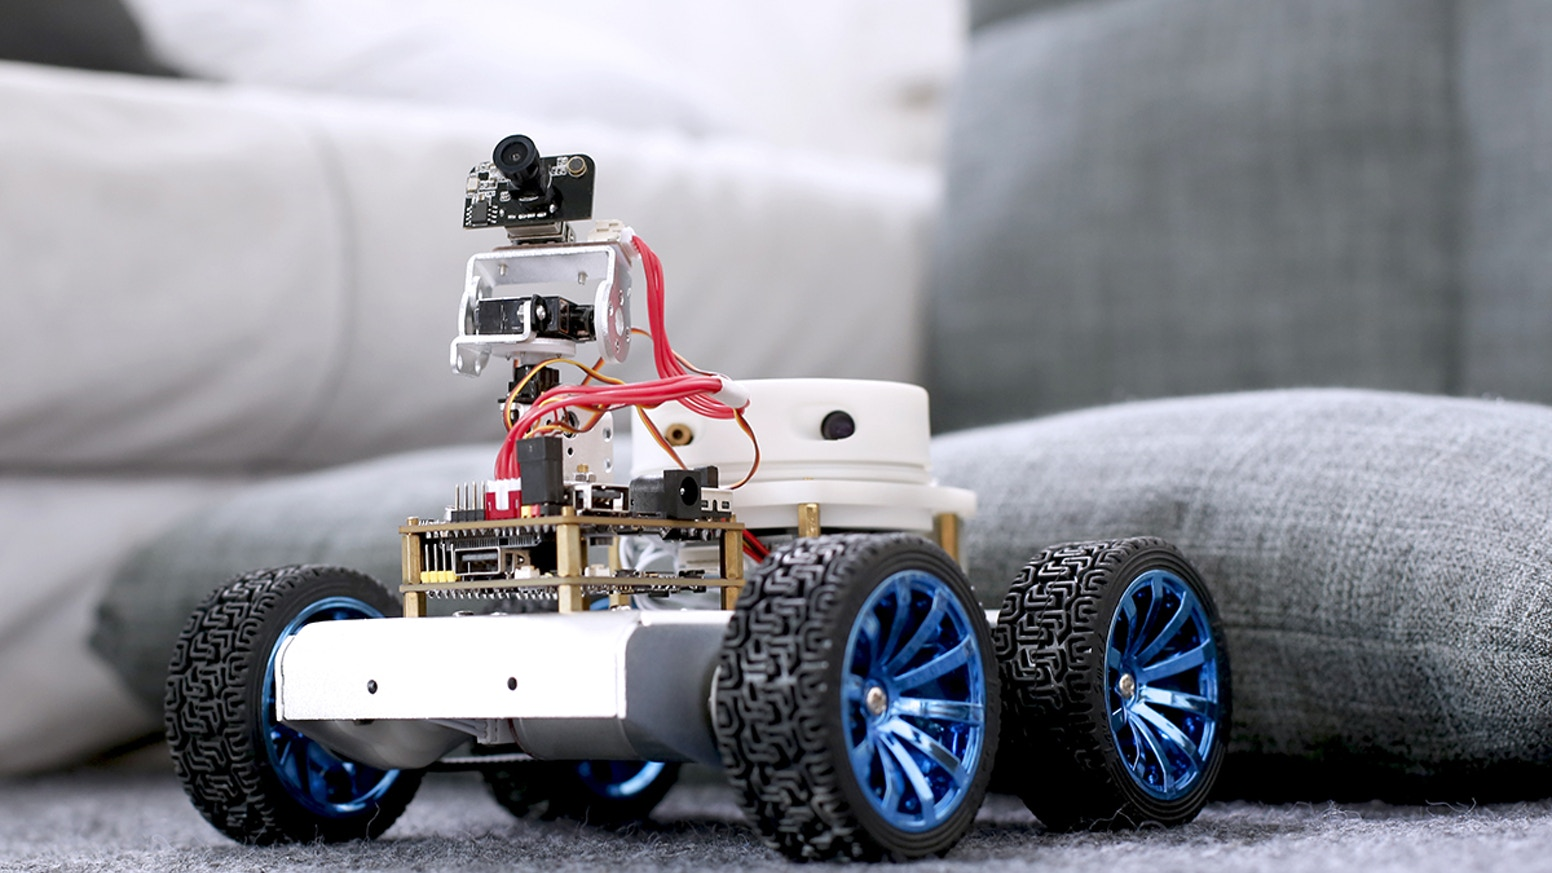 Crazypi the true robot kit for diy robot lovers by crazypi crazypi the true robot kit for diy robot lovers solutioingenieria Image collections